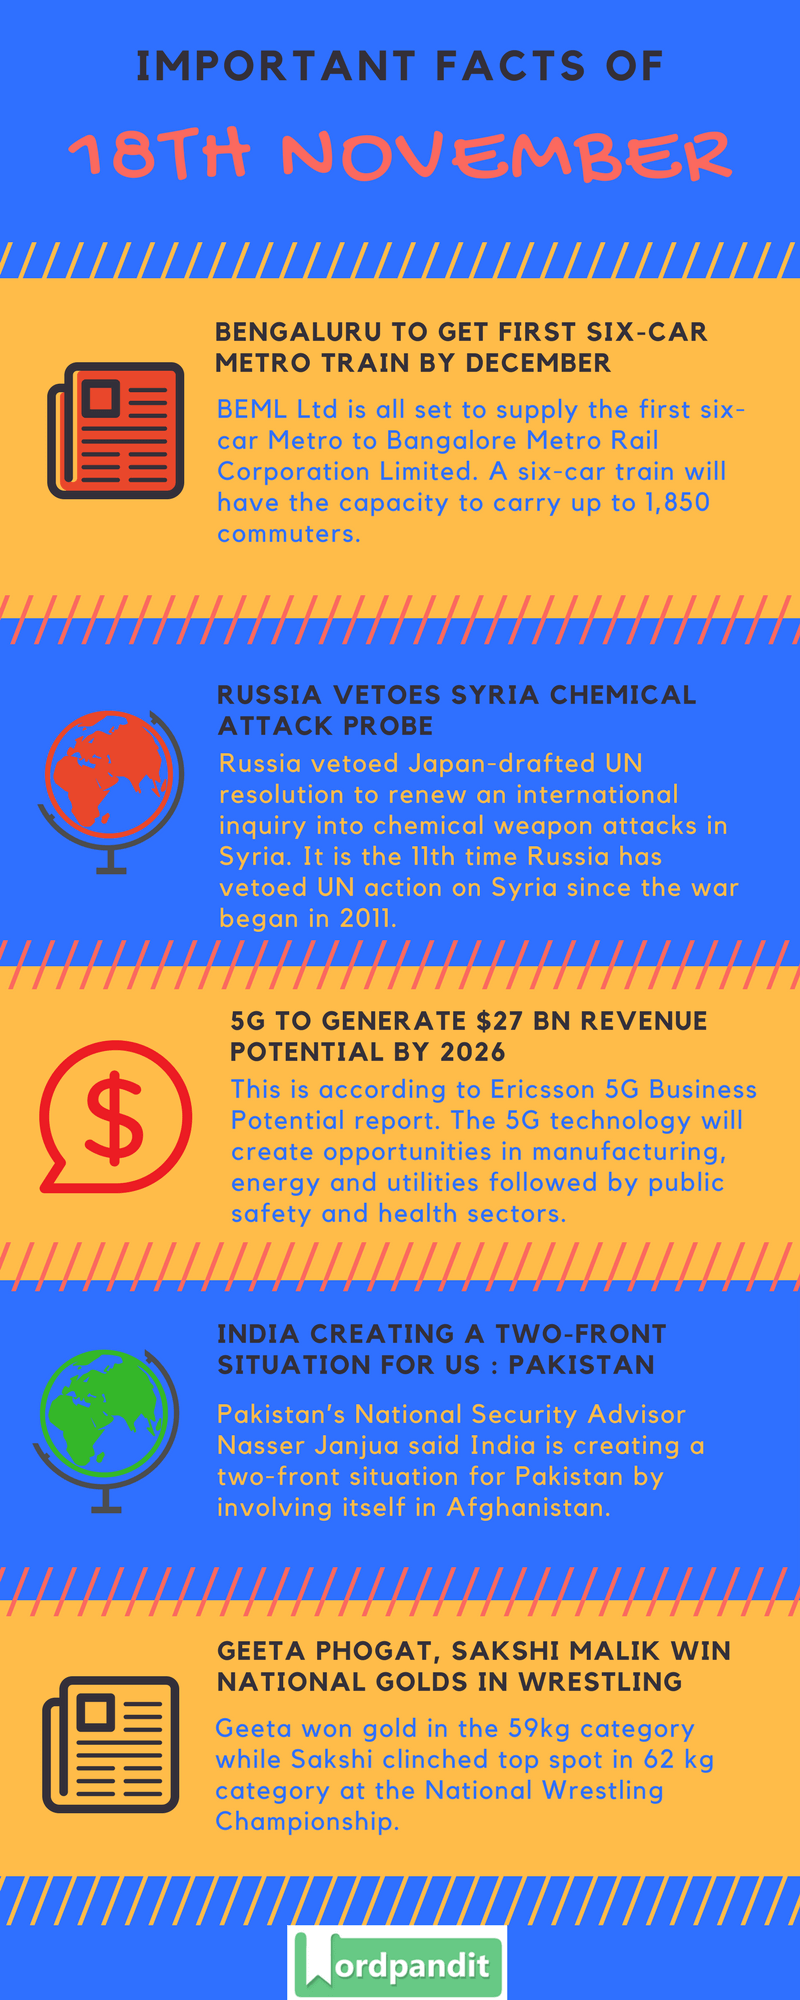 Daily-Current-Affairs-18-november-2017-Current-Affairs-Quiz-november-18-2017-Current-Affairs-Infographic